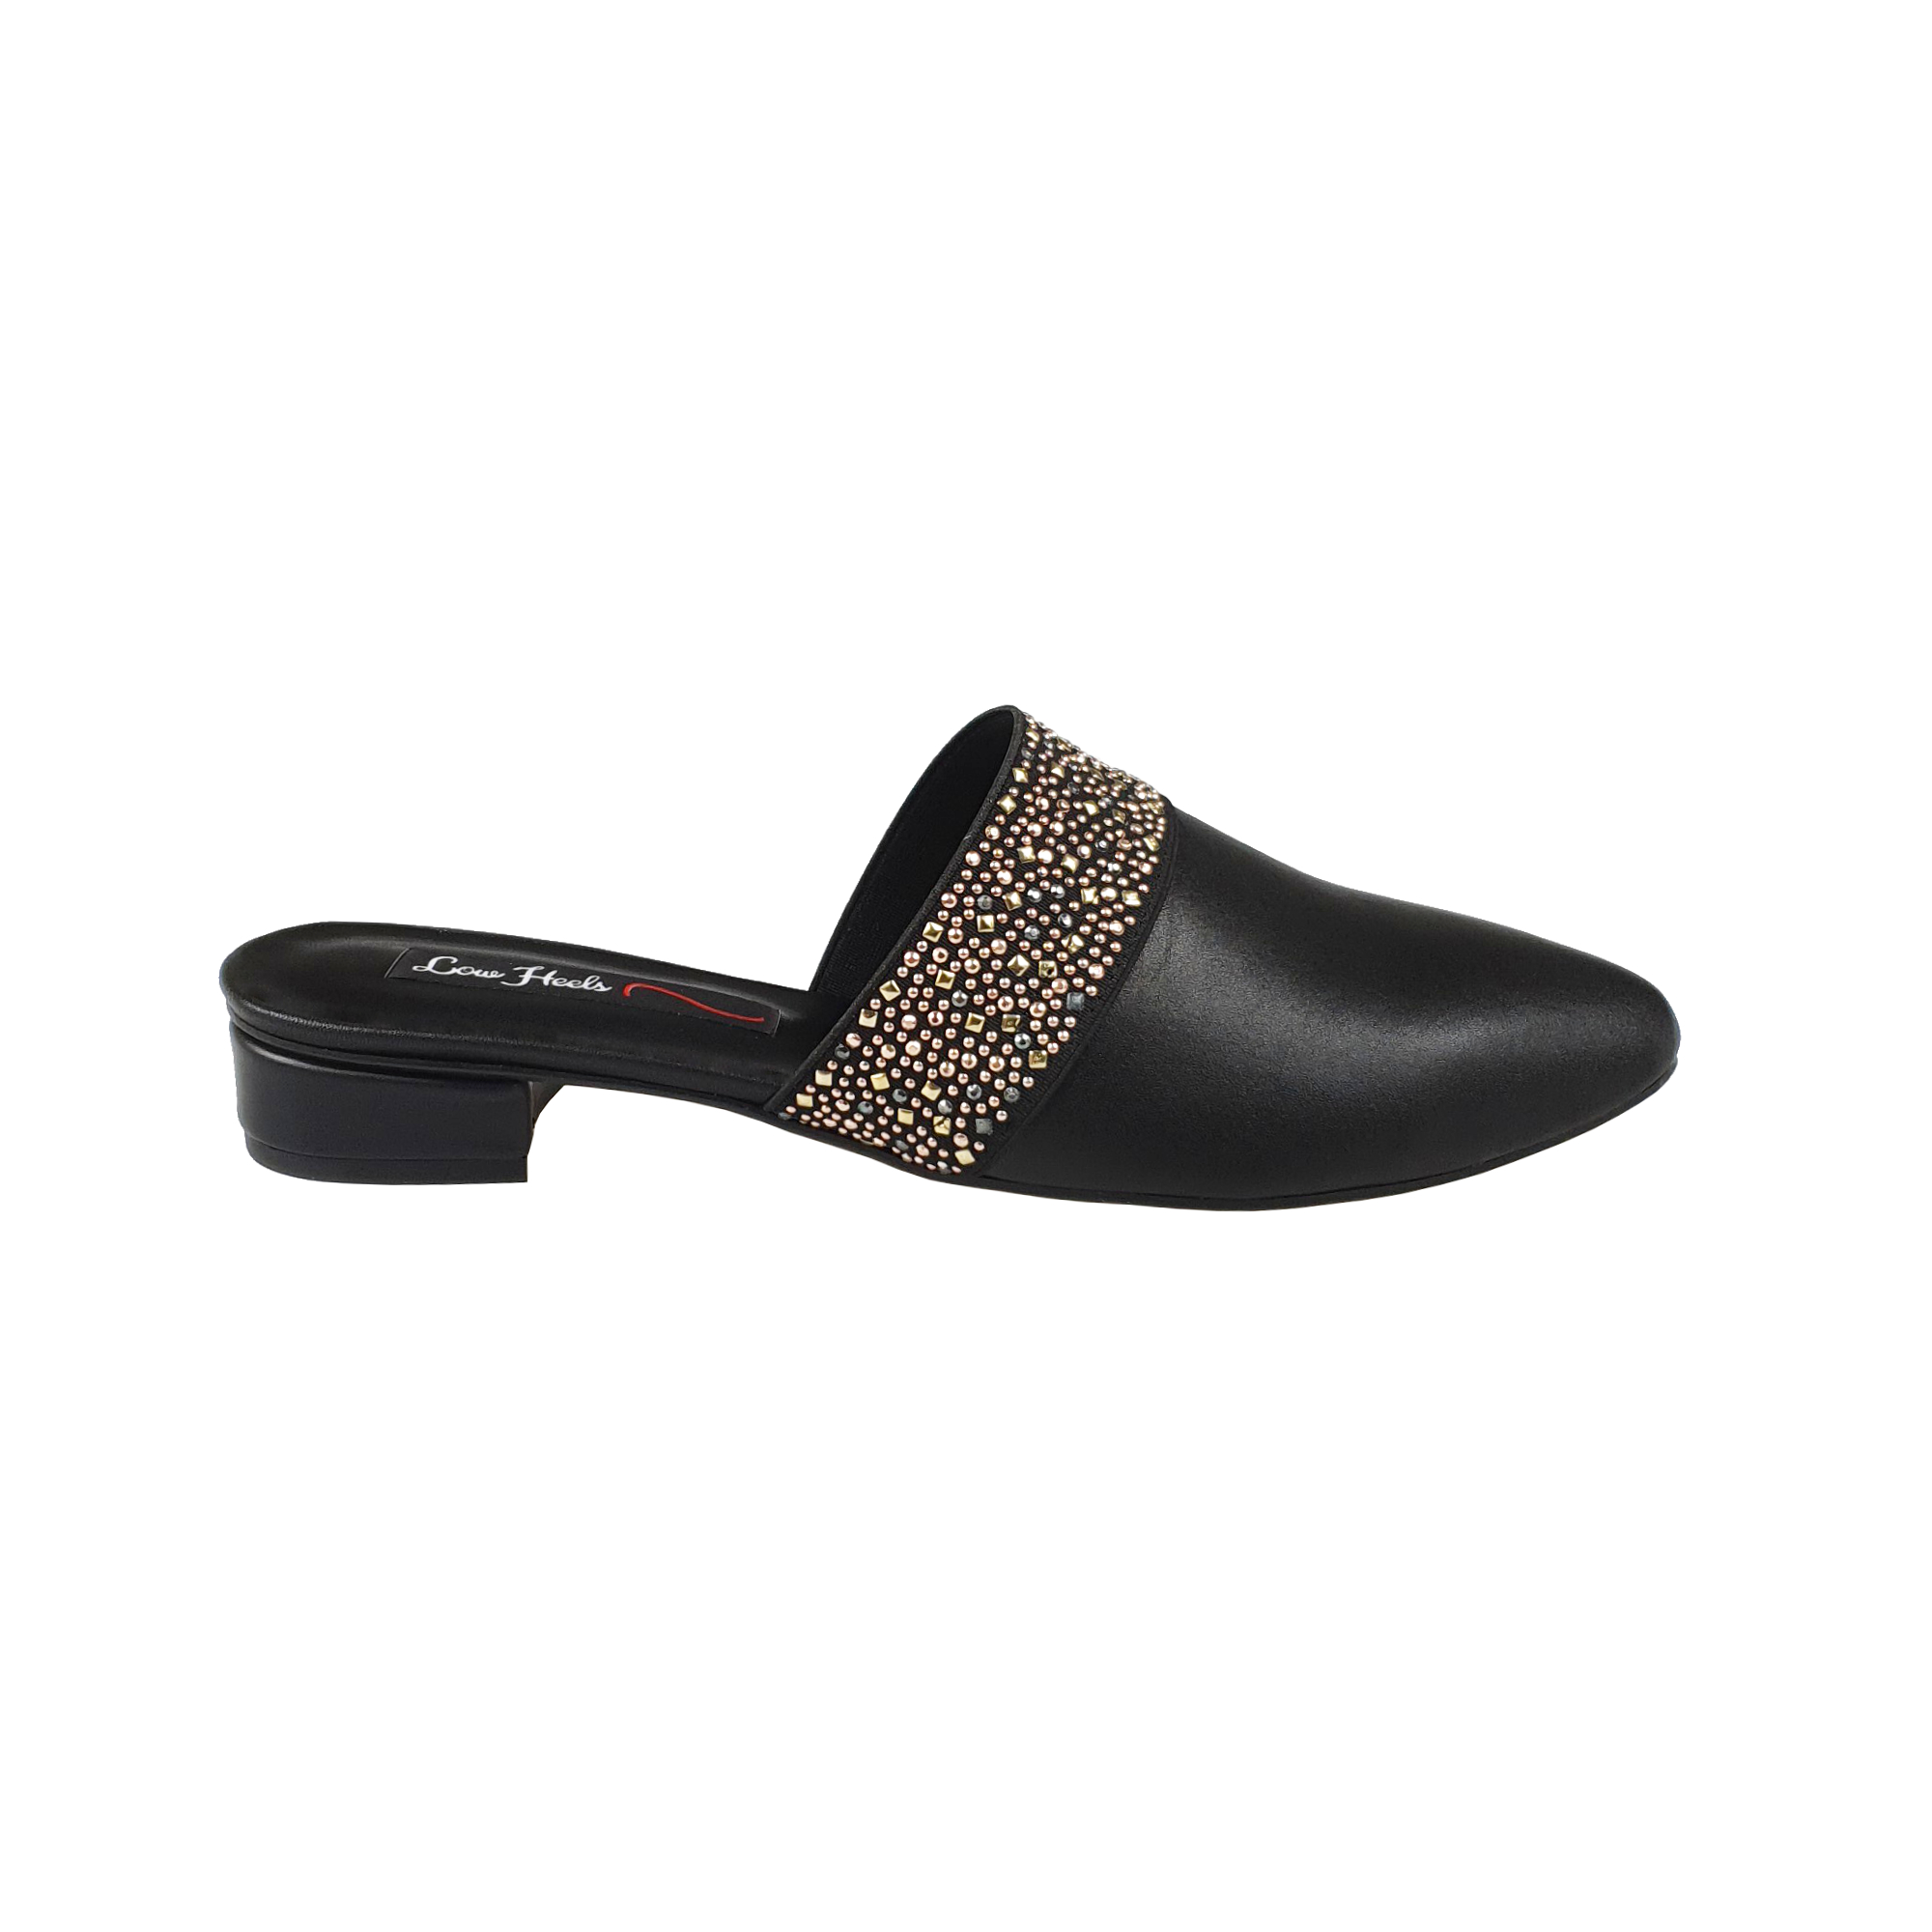 Zara mules with elastic insets in black leather